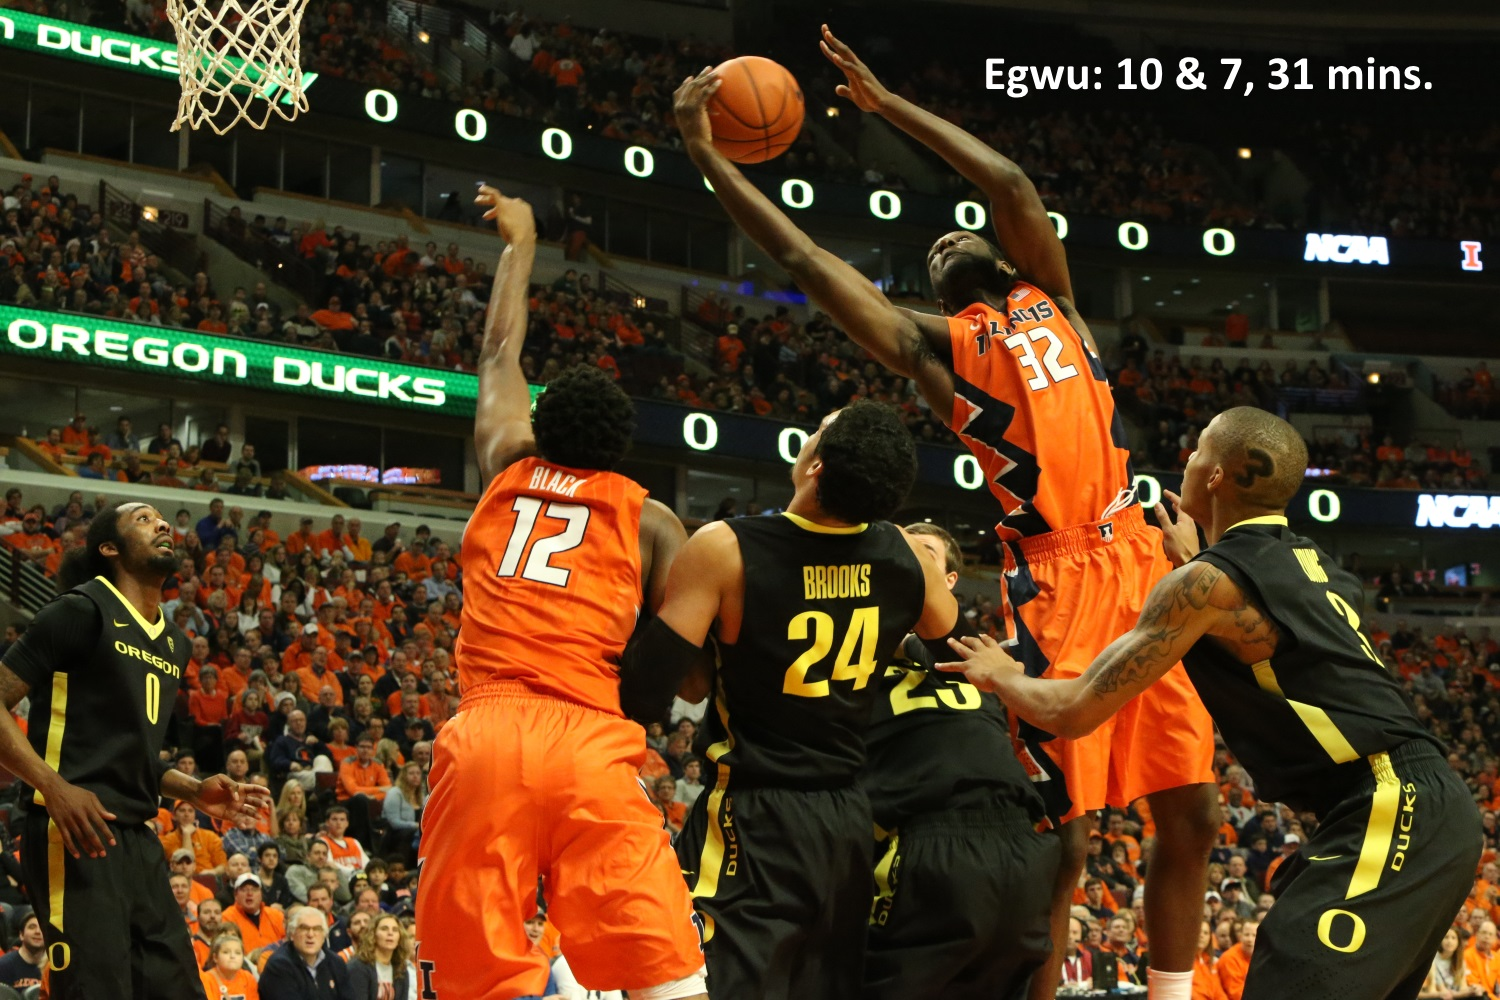 Egwu 10 and 7 versus Oregon